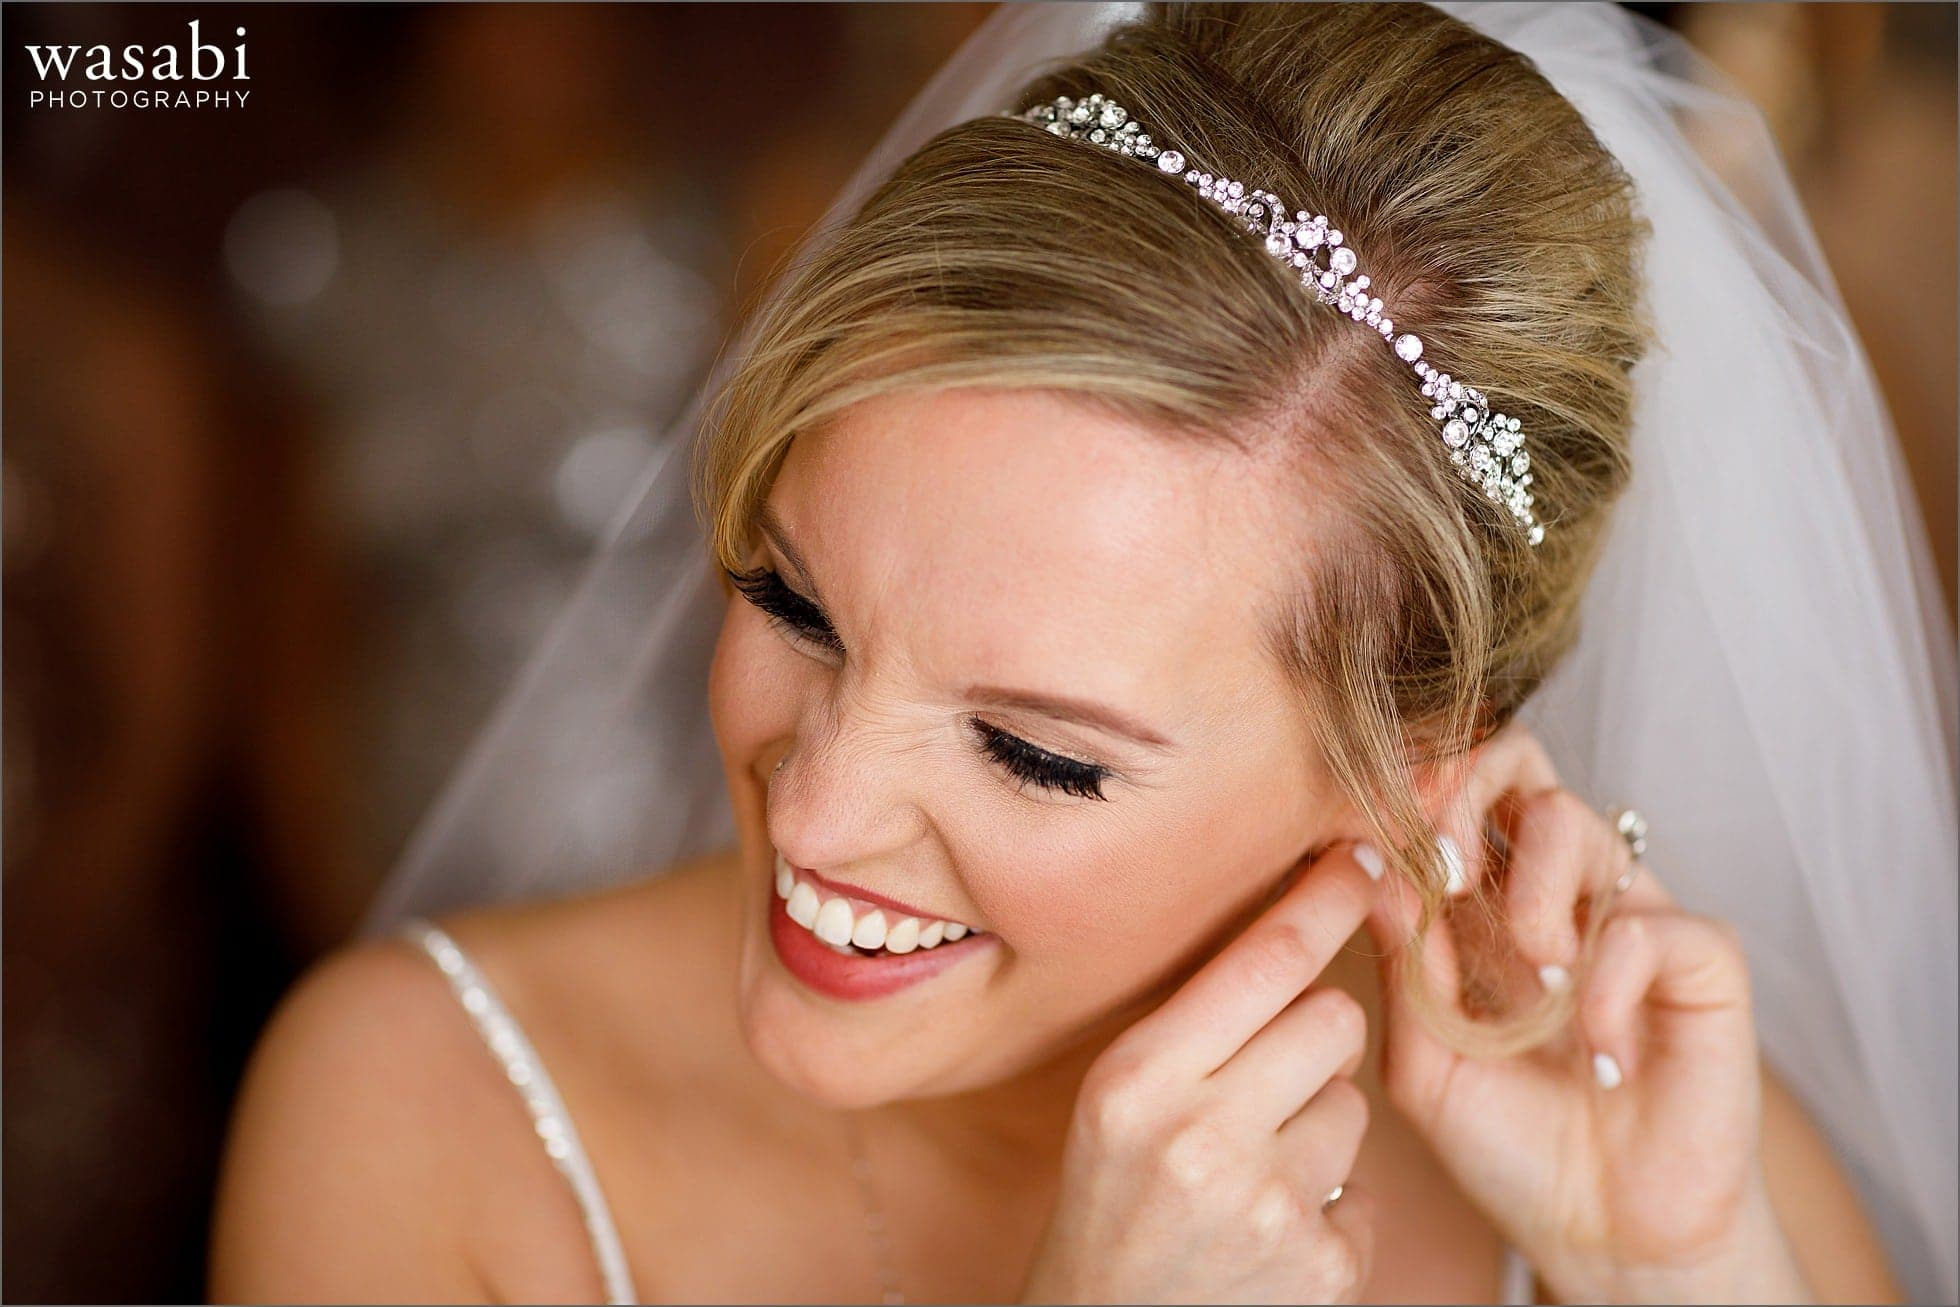 bride puts on earrings while getting ready for wedding